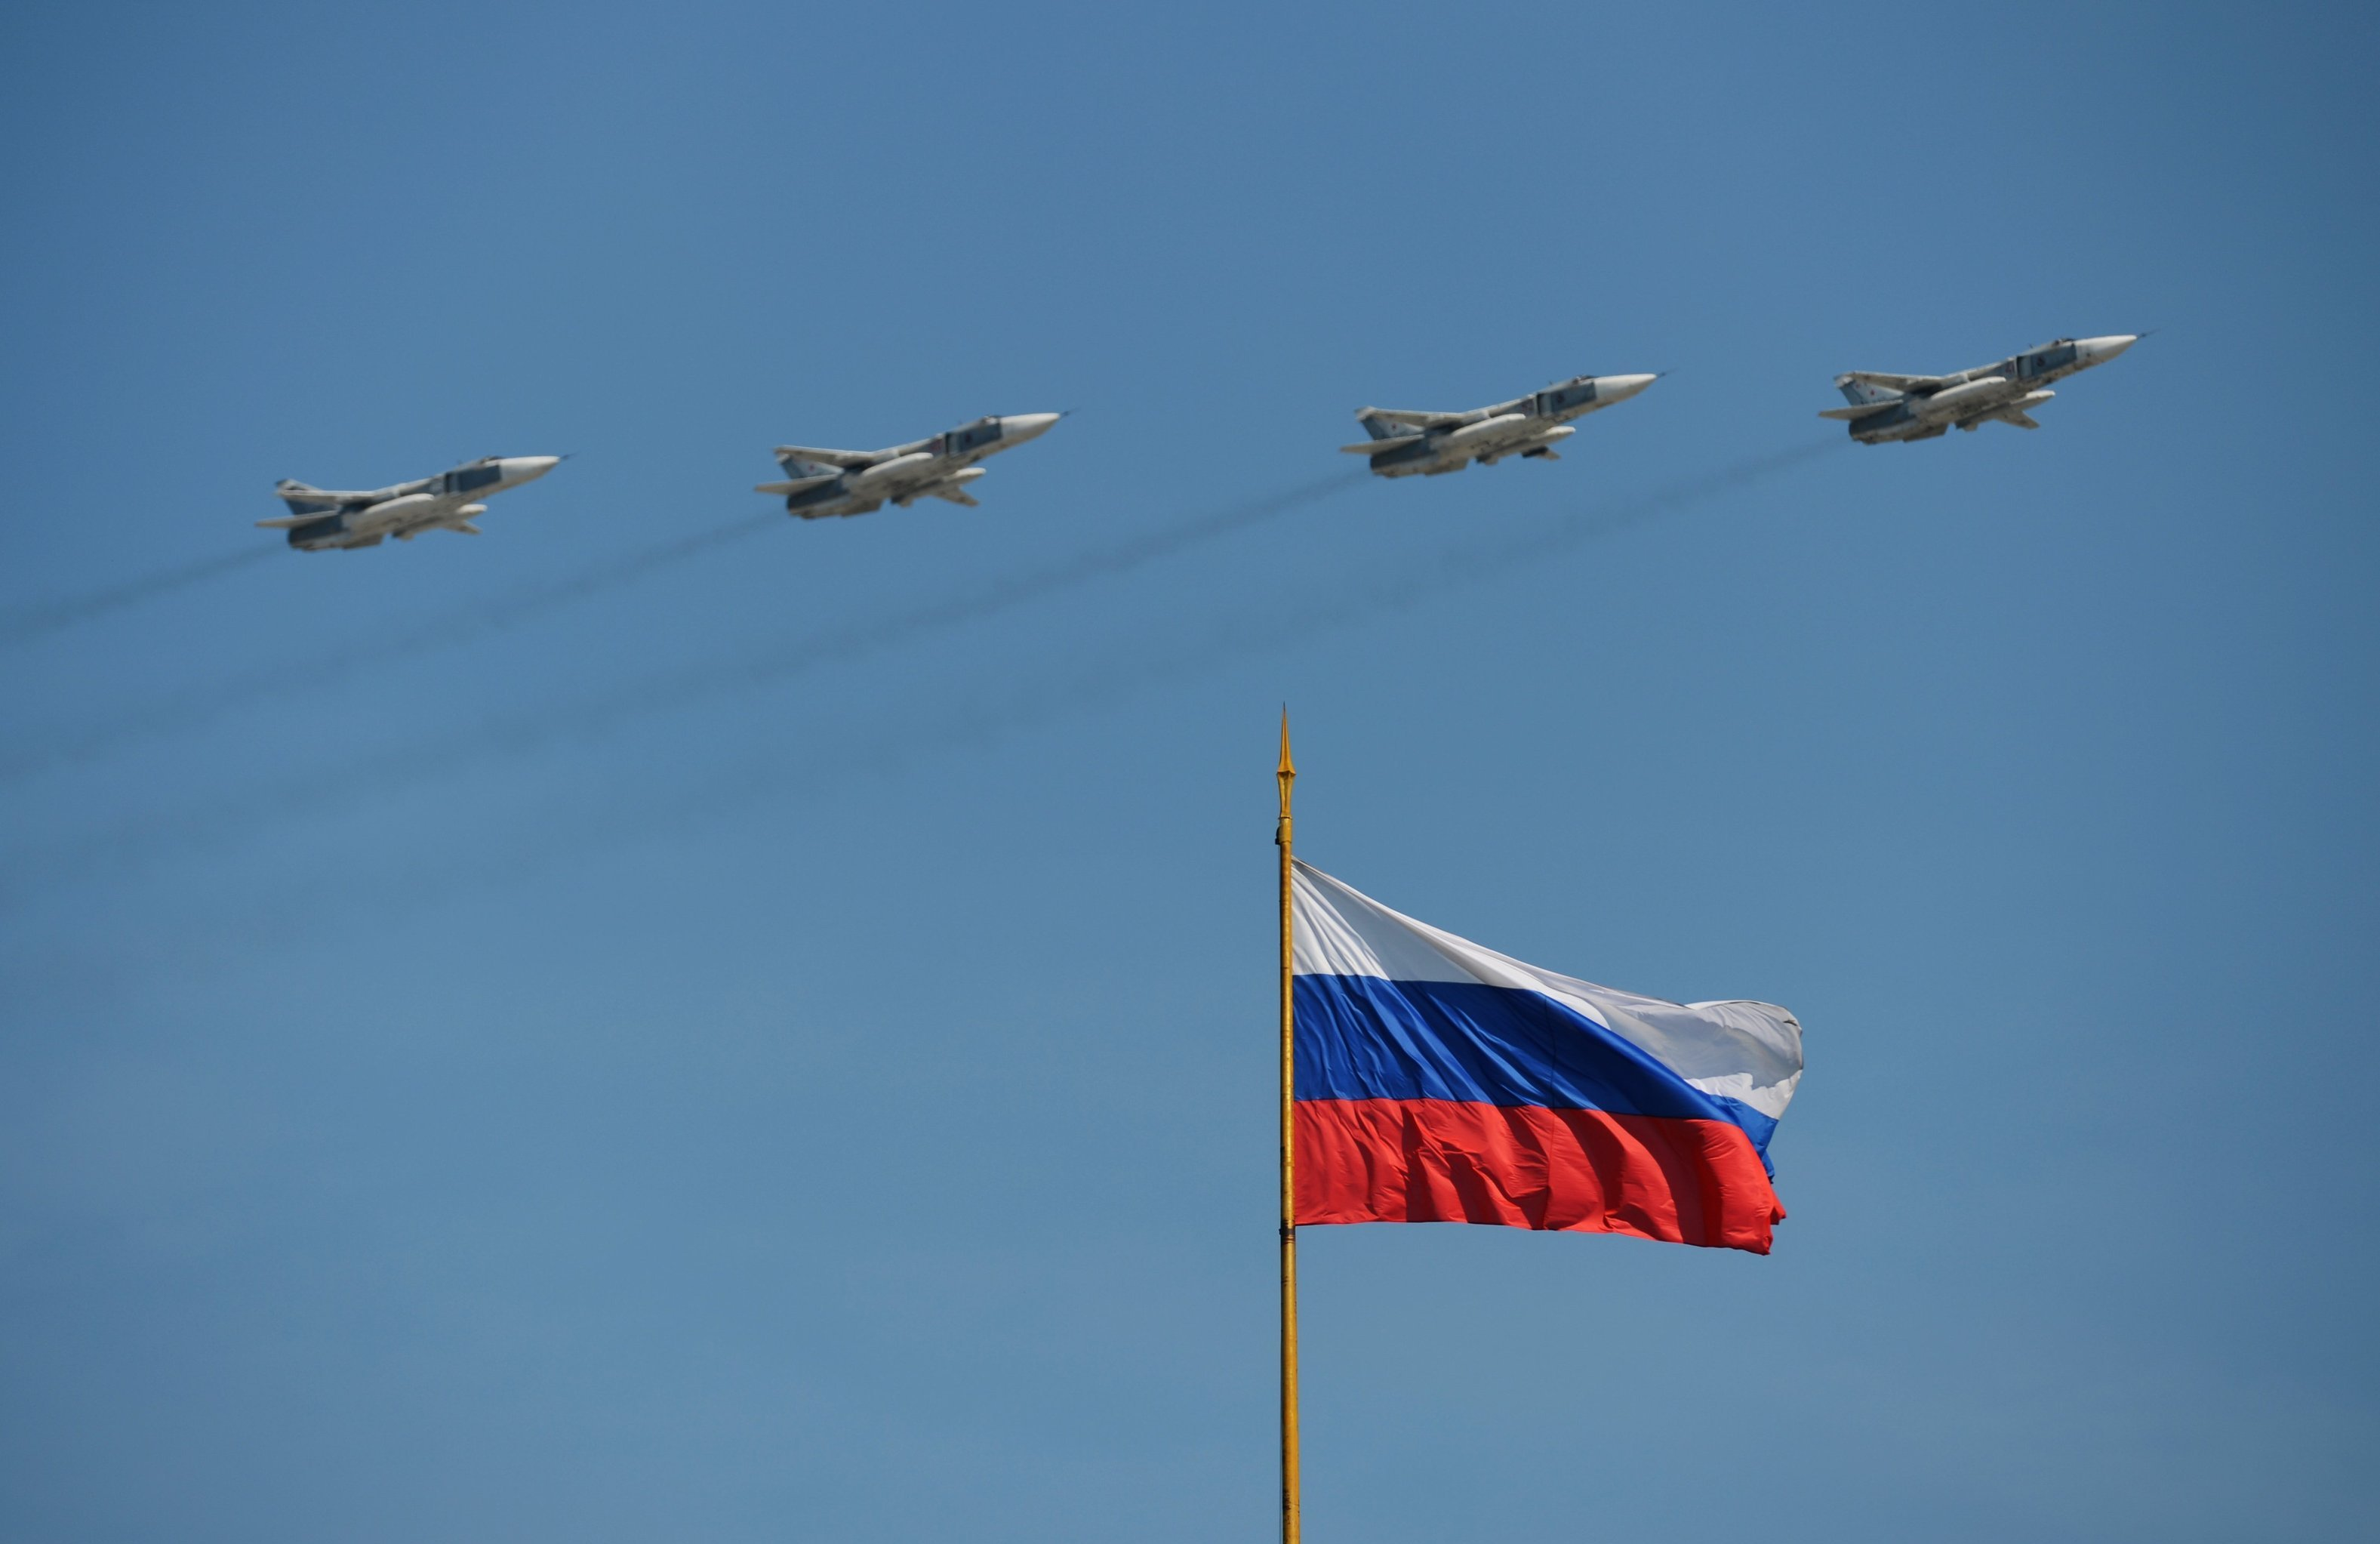 The Su-24 bombers seen flying during the May 9 Victory Day Parade in Moscow